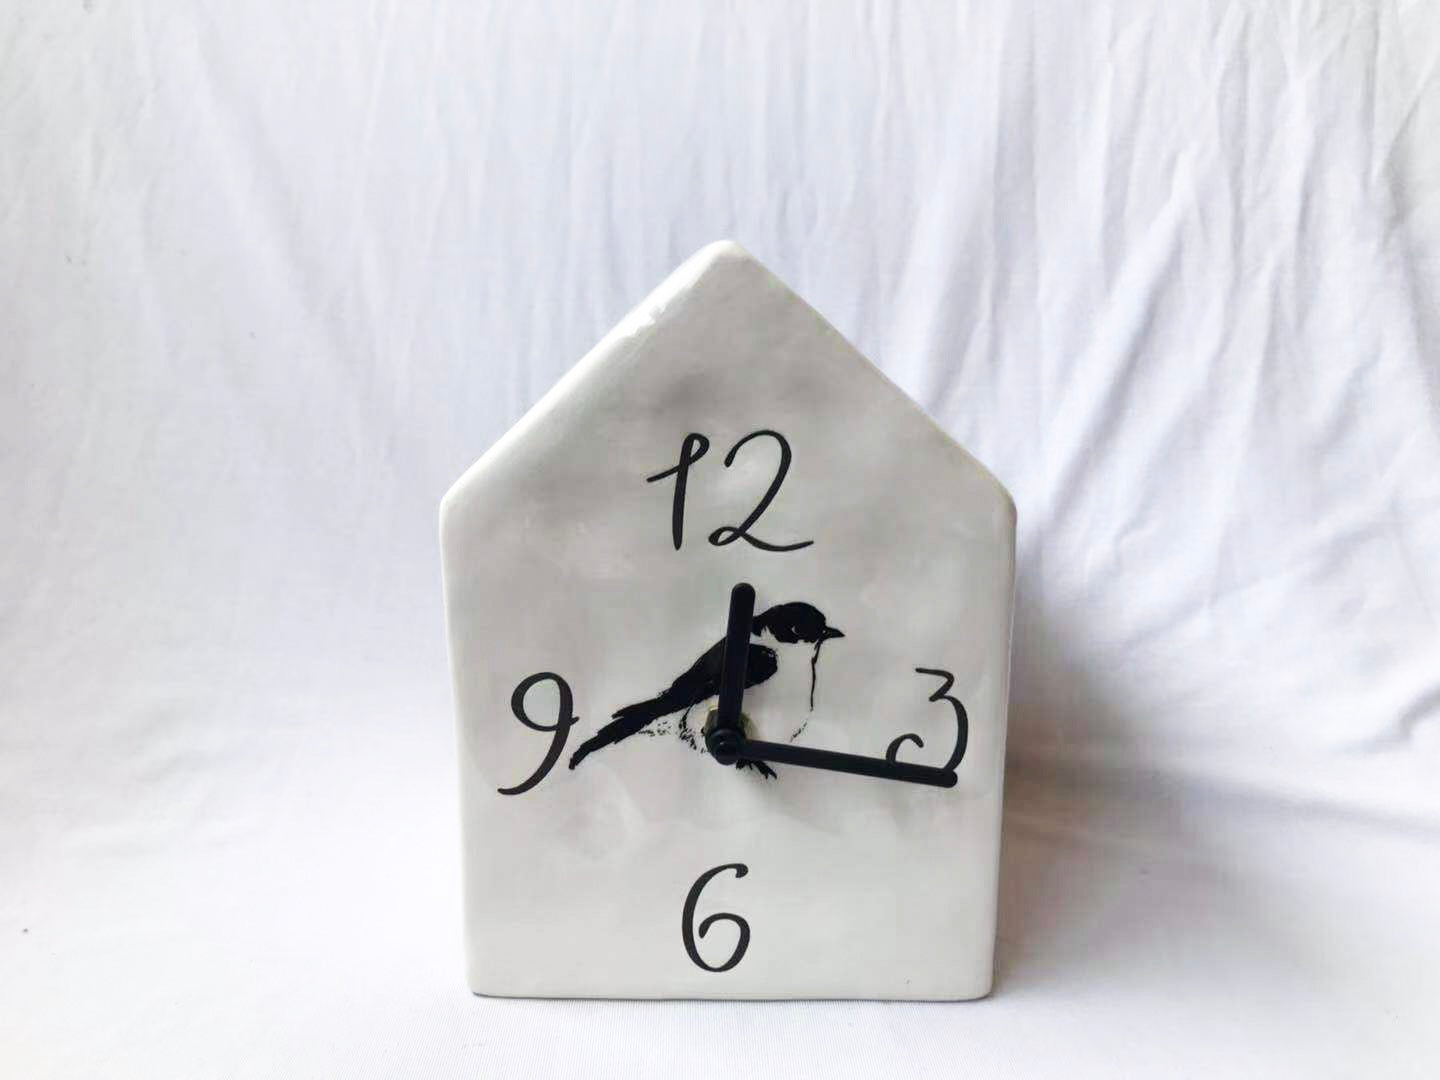 Ceramic Birdhouse Clock By Kathy Diep